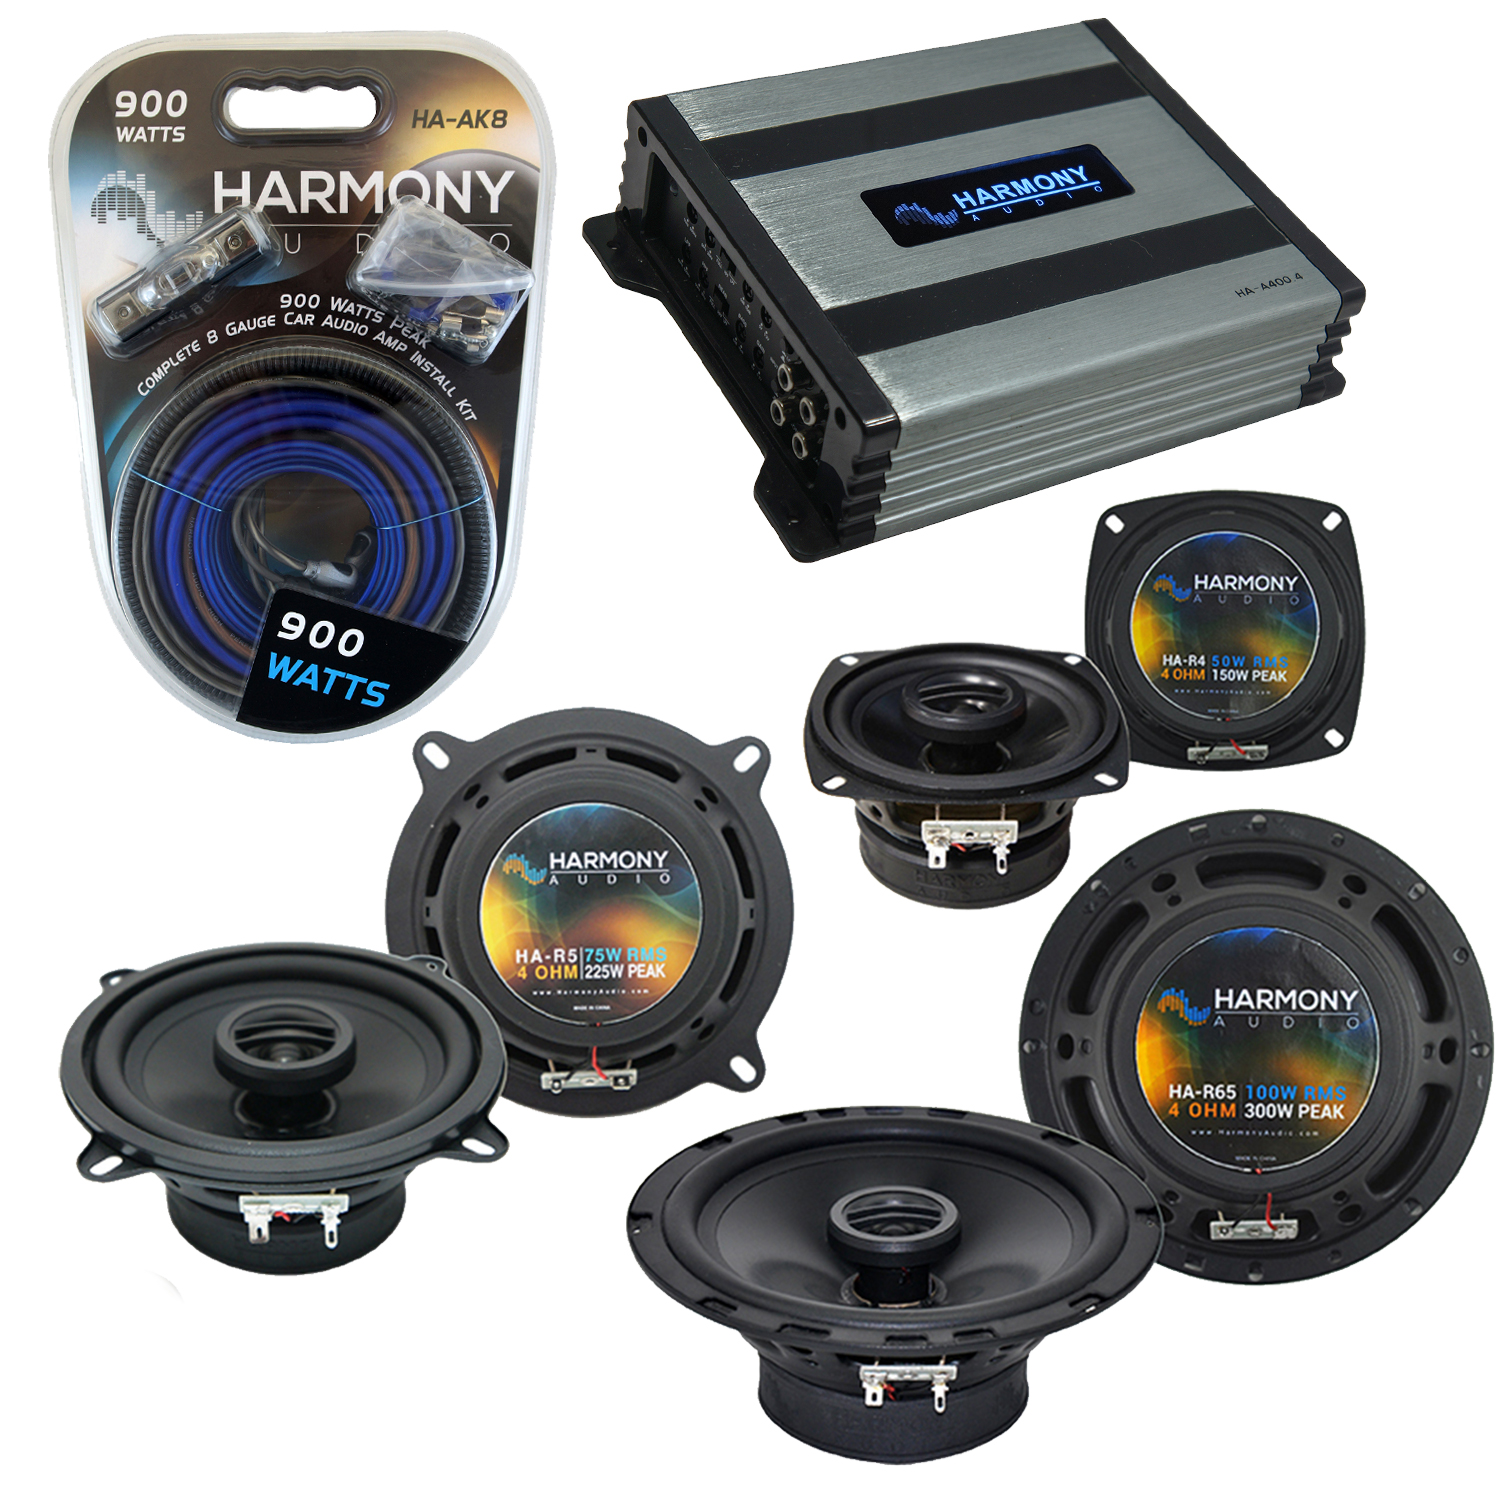 Compatible with Toyota Tercel 87-90 Factory Speaker Replacement Harmony R65 R4 R5 & Harmony HA-A400.4 Amp